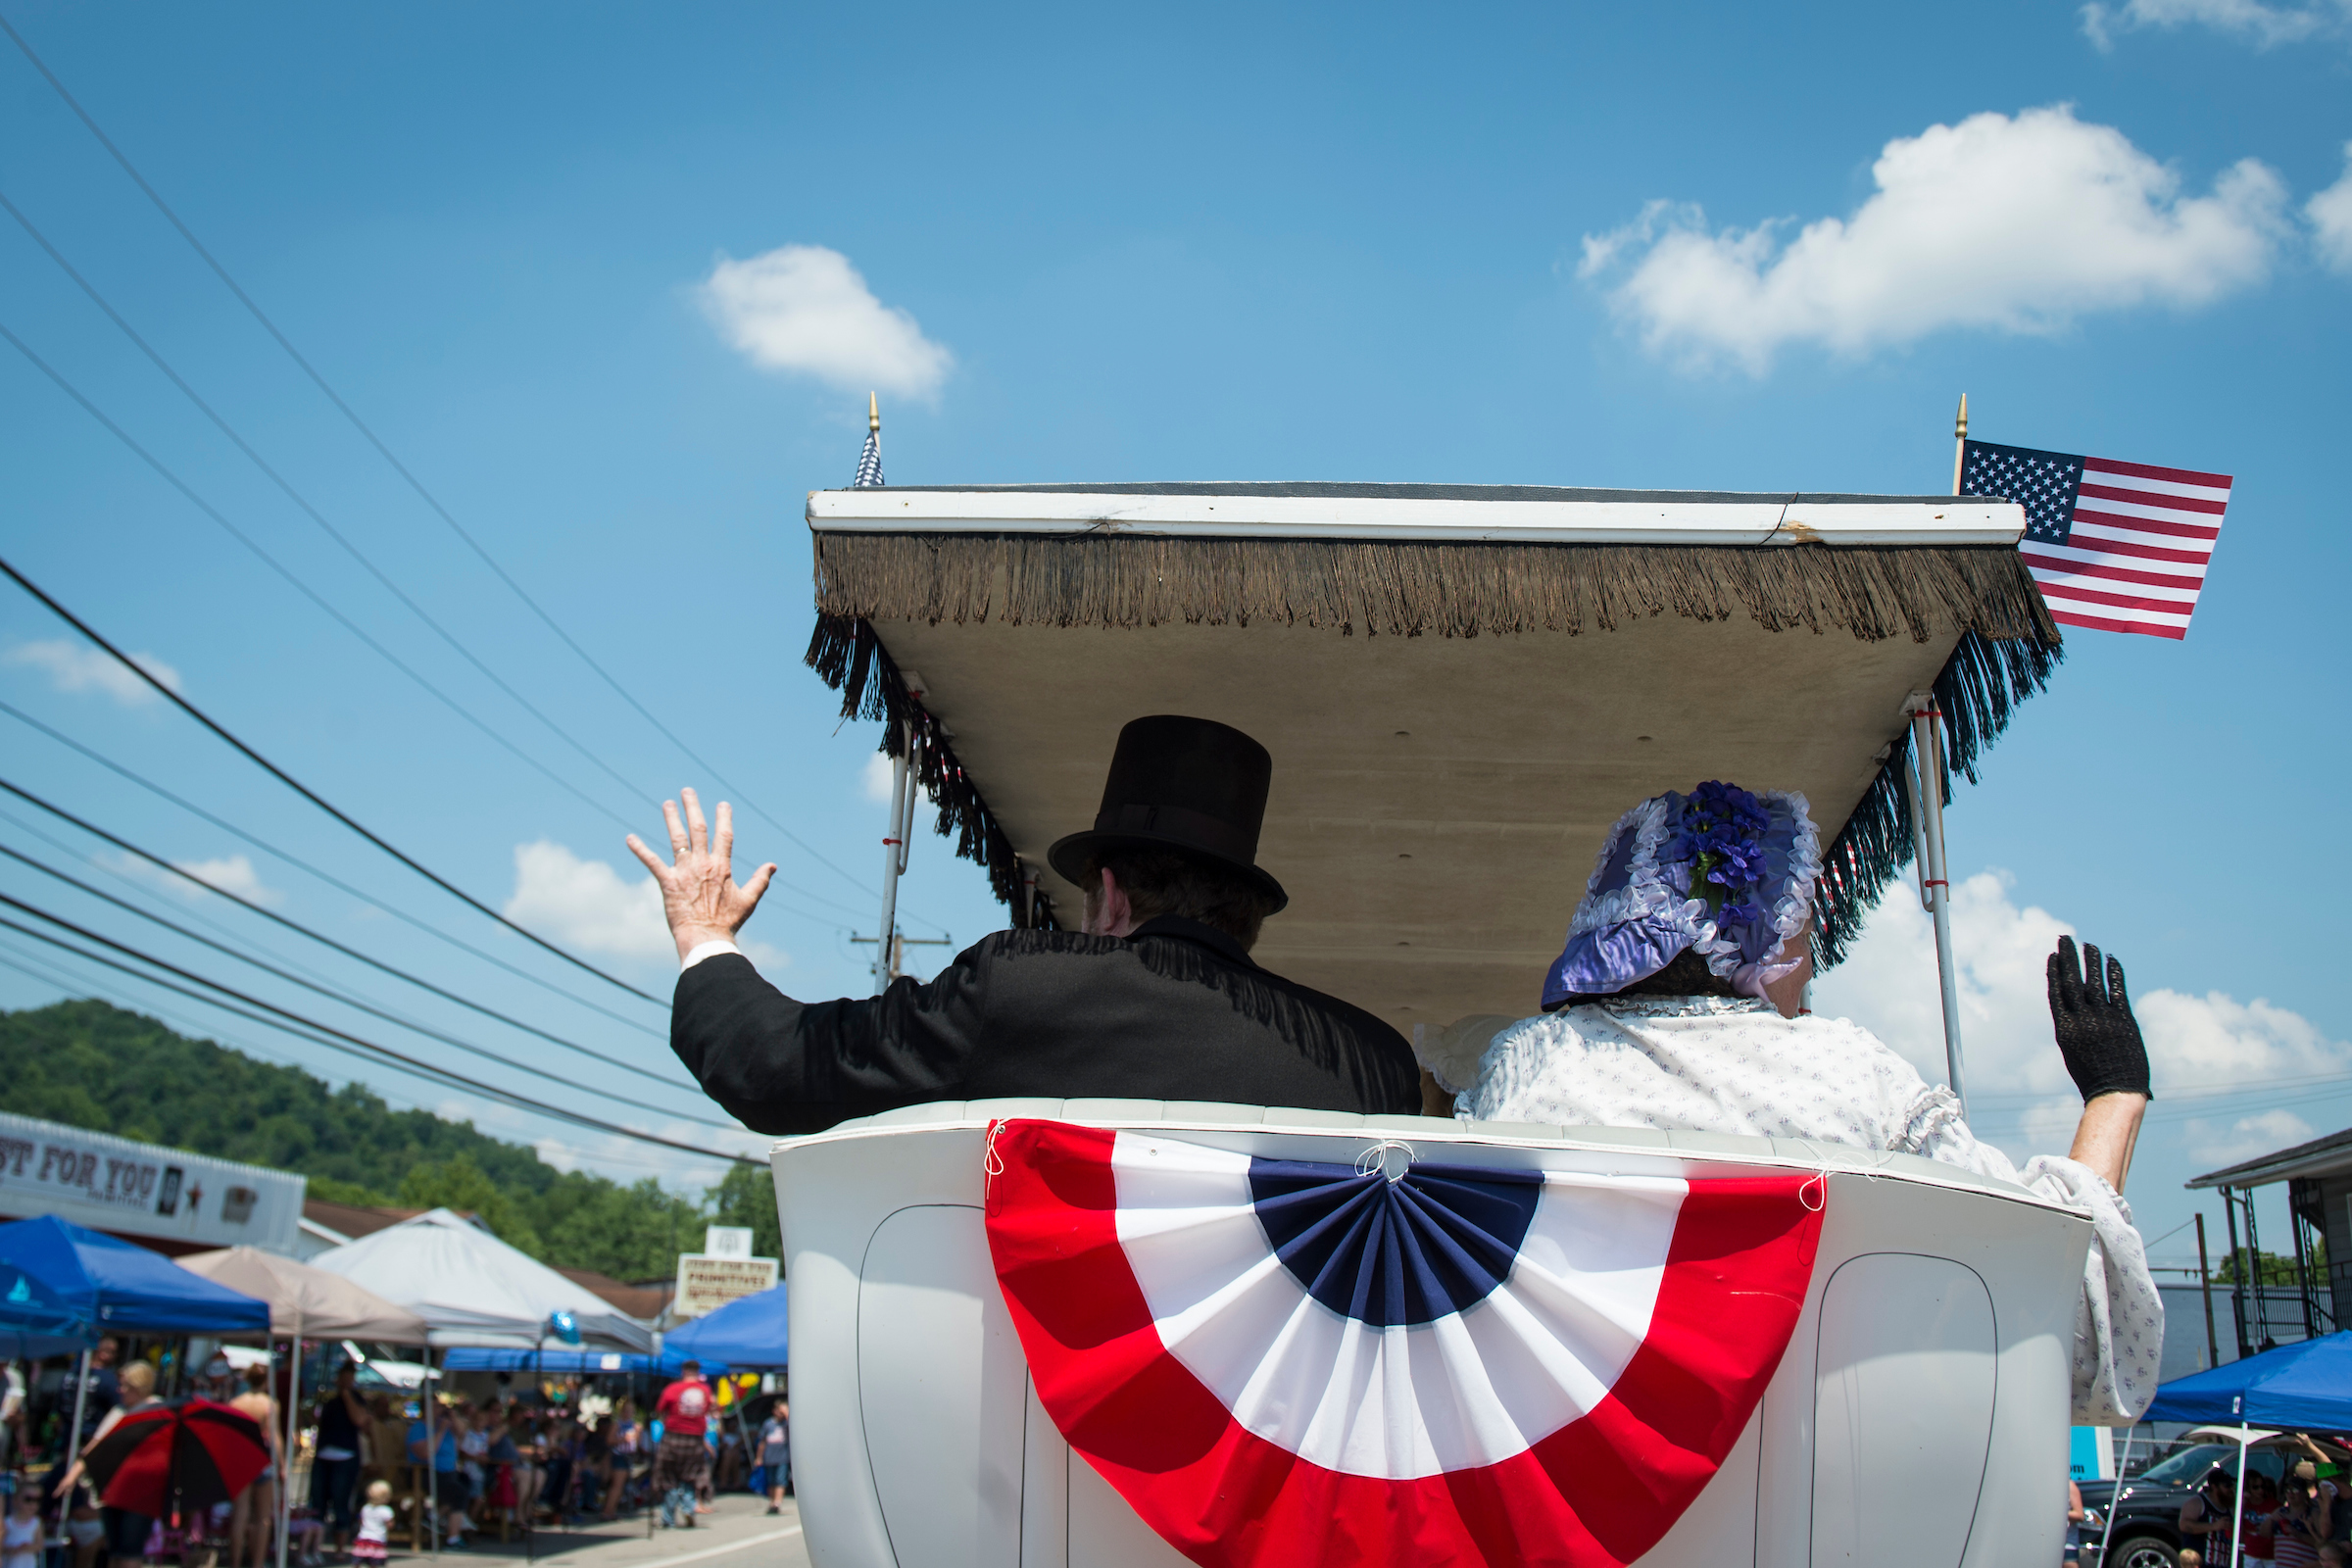 UNITED STATES - July 4: A man dressed as President Abraham Lincoln waves to the crowd during the Ripley 4th of July Grand Parade in Ripley, West Virginia Wednesday July 4, 2018. (Photo By Sarah Silbiger/CQ Roll Call)